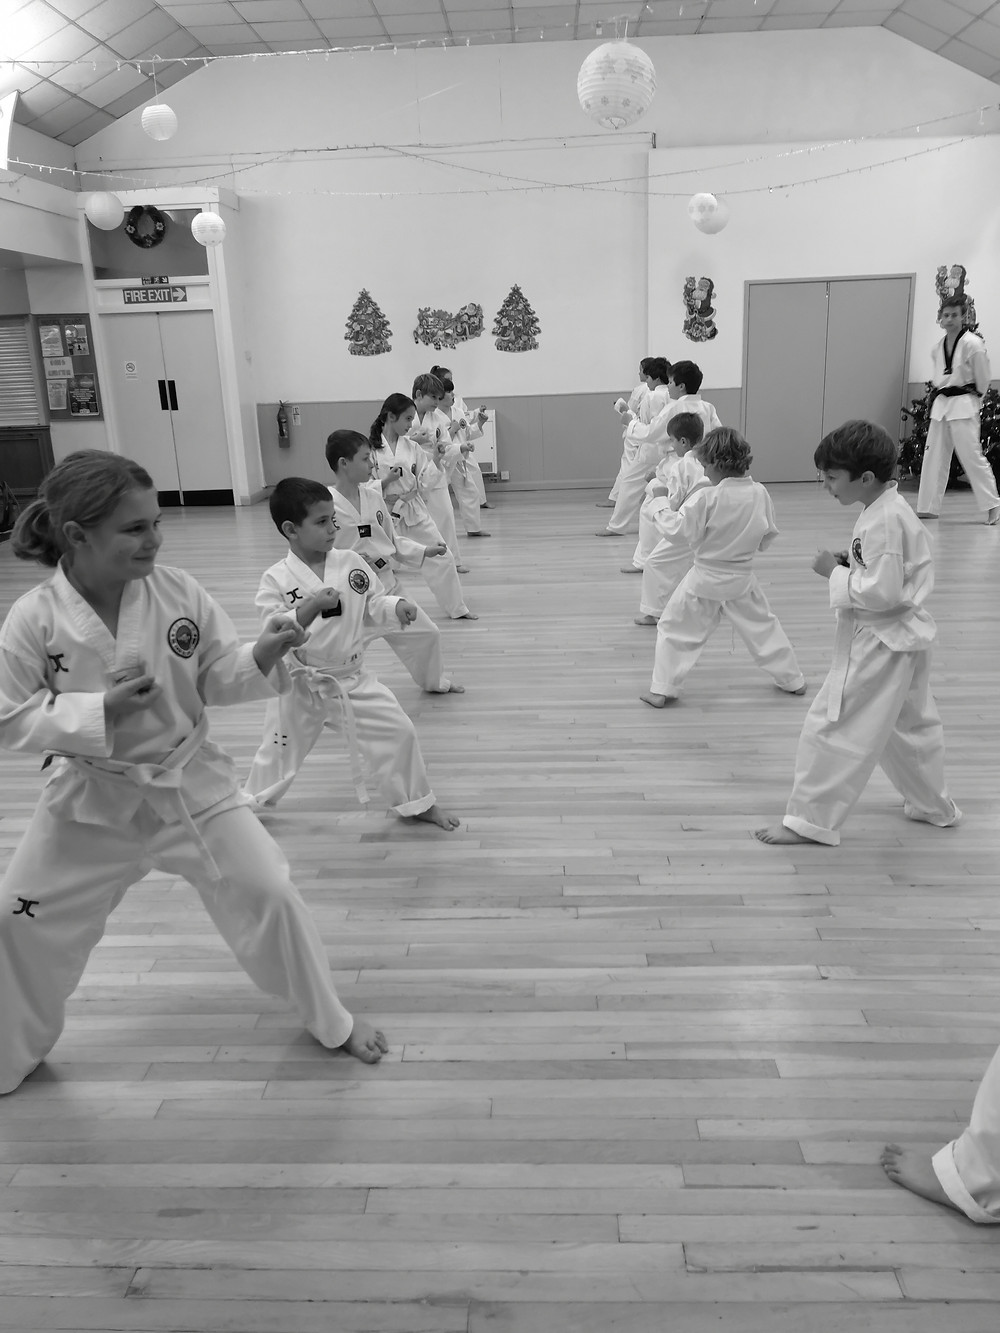 taekwondo kids white belts